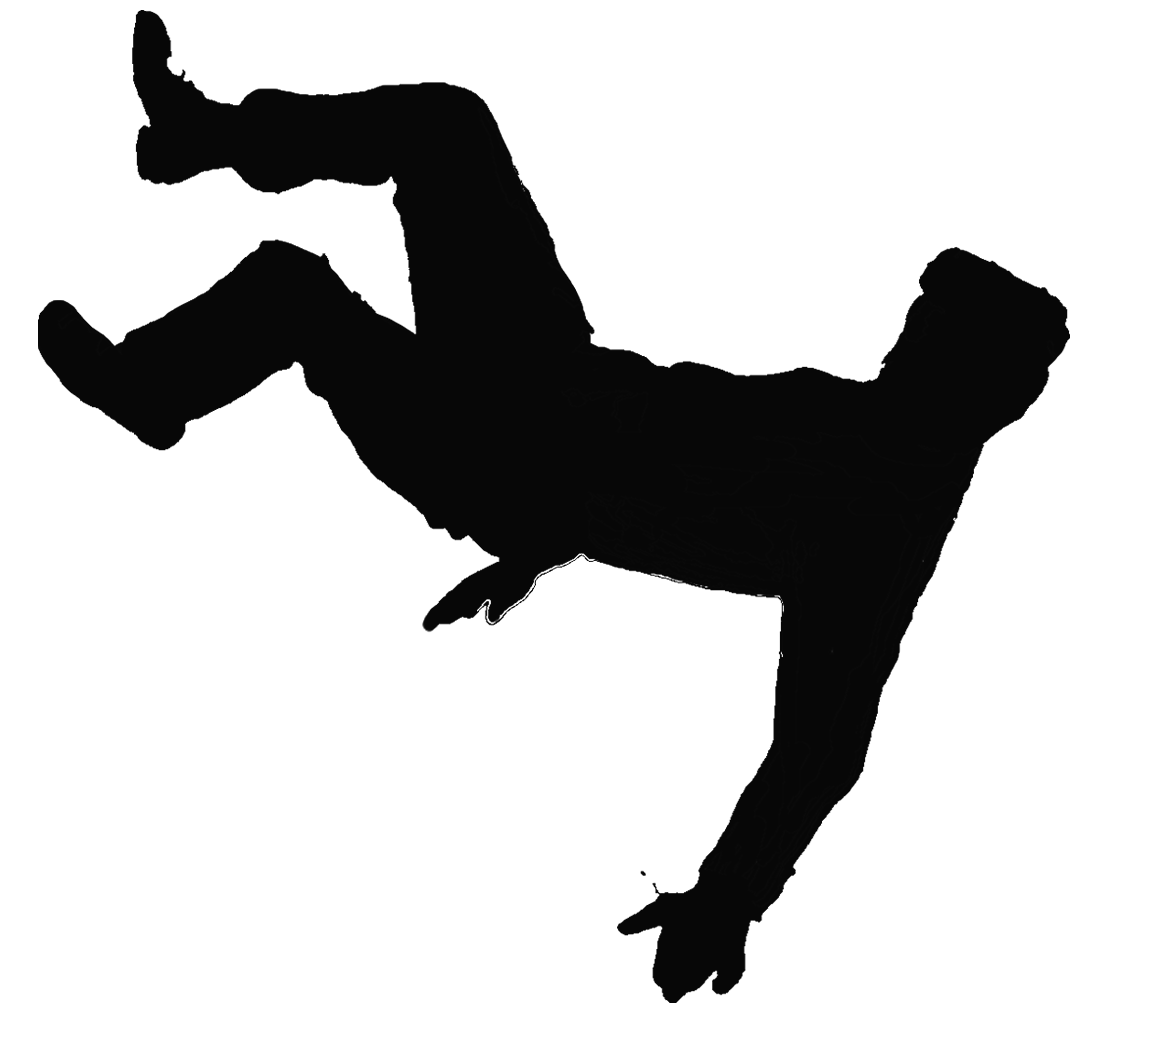 Clipart person falling banner transparent library Free Guy Falling Cliparts, Download Free Clip Art, Free Clip Art on ... banner transparent library